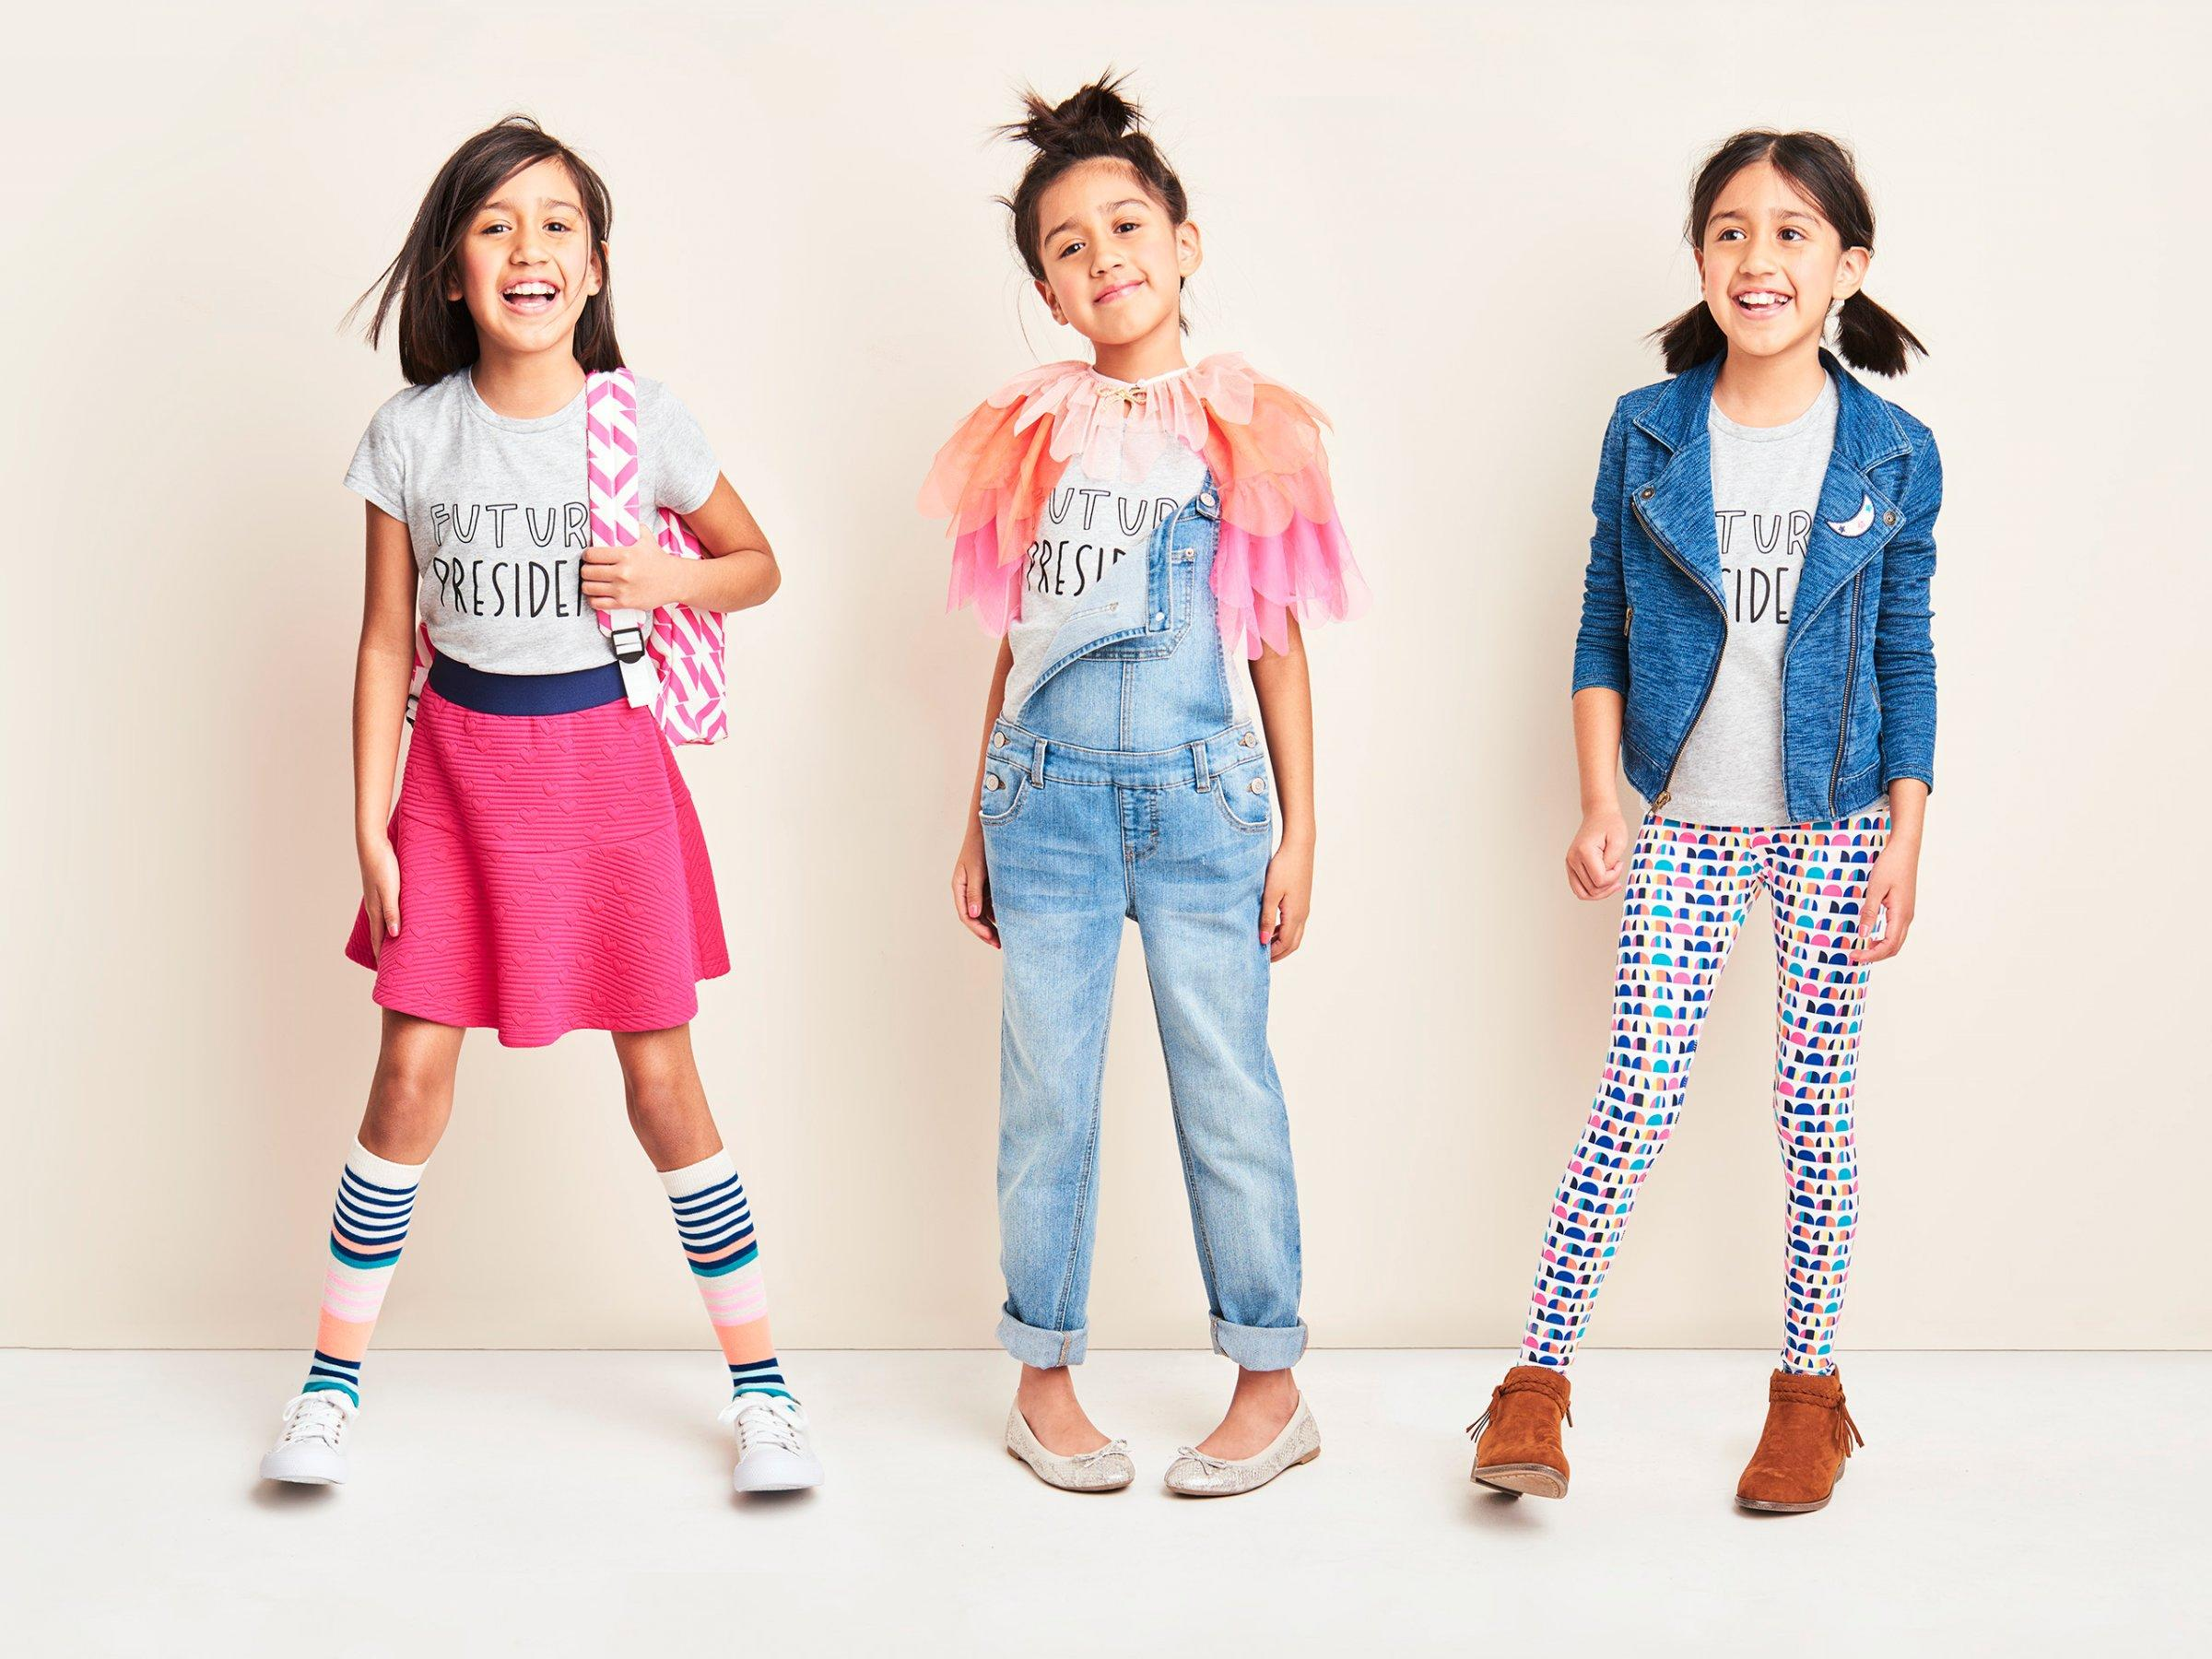 Today in awesome Tar debuts new kids clothing line with gender